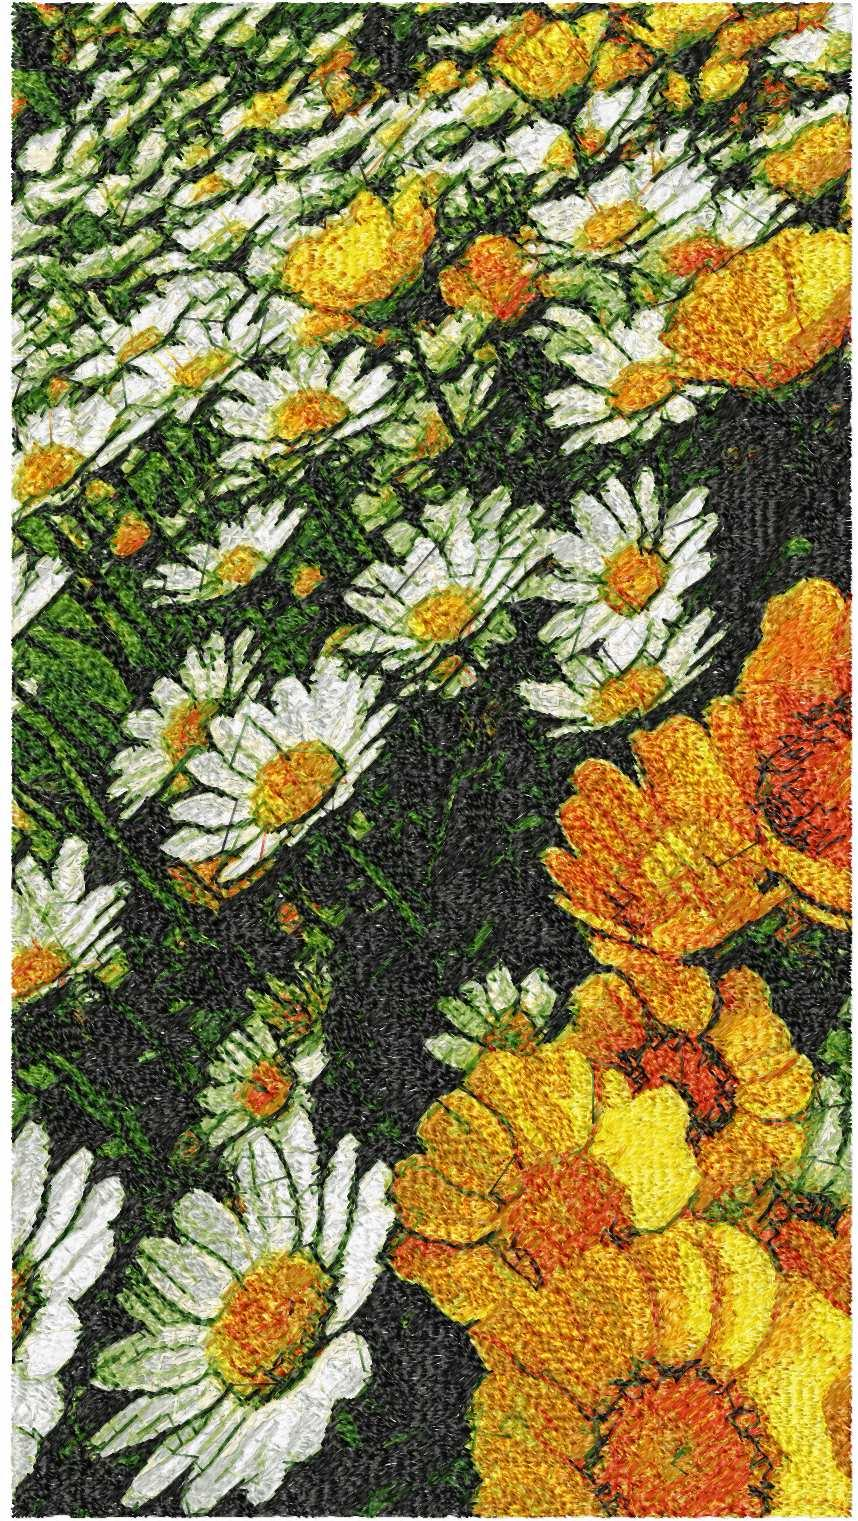 Summer meadow with flowers photo stitch free embroidery design